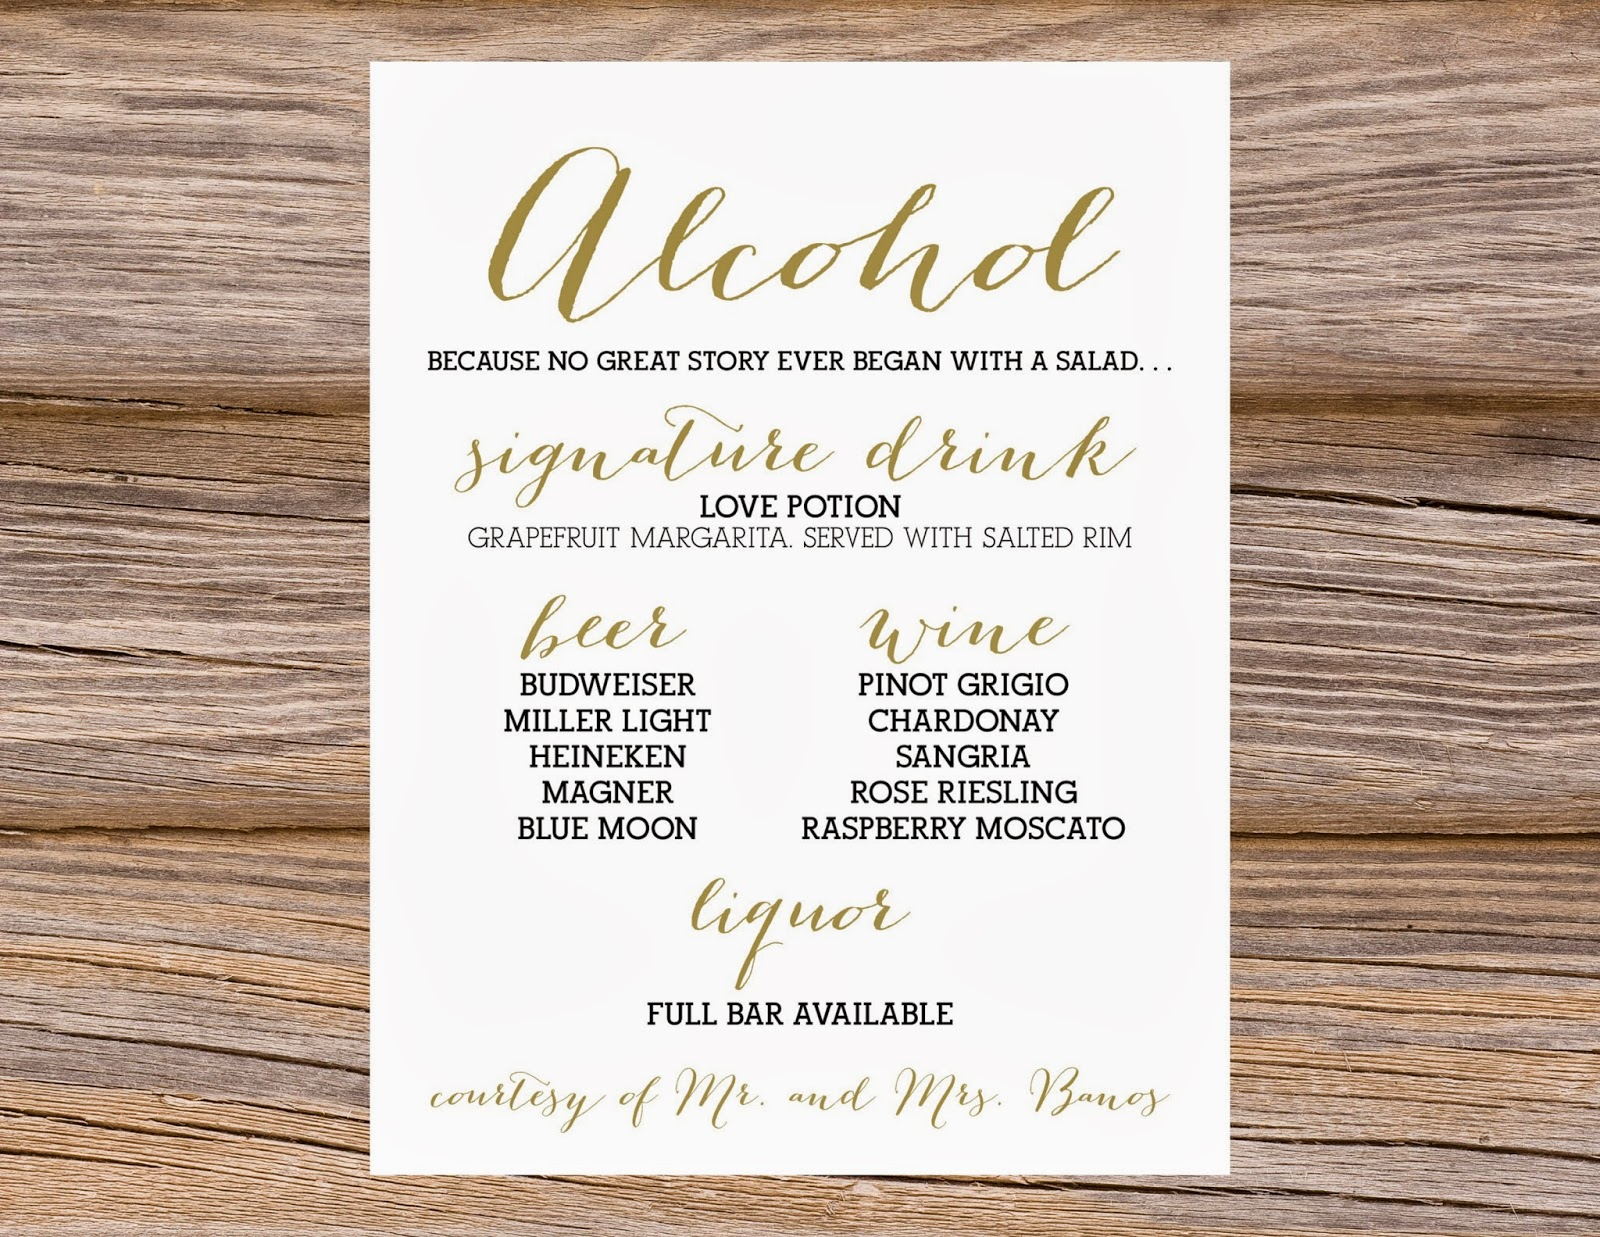 13 bar menu template images bar menu templates free bar for Wedding drink menu template free